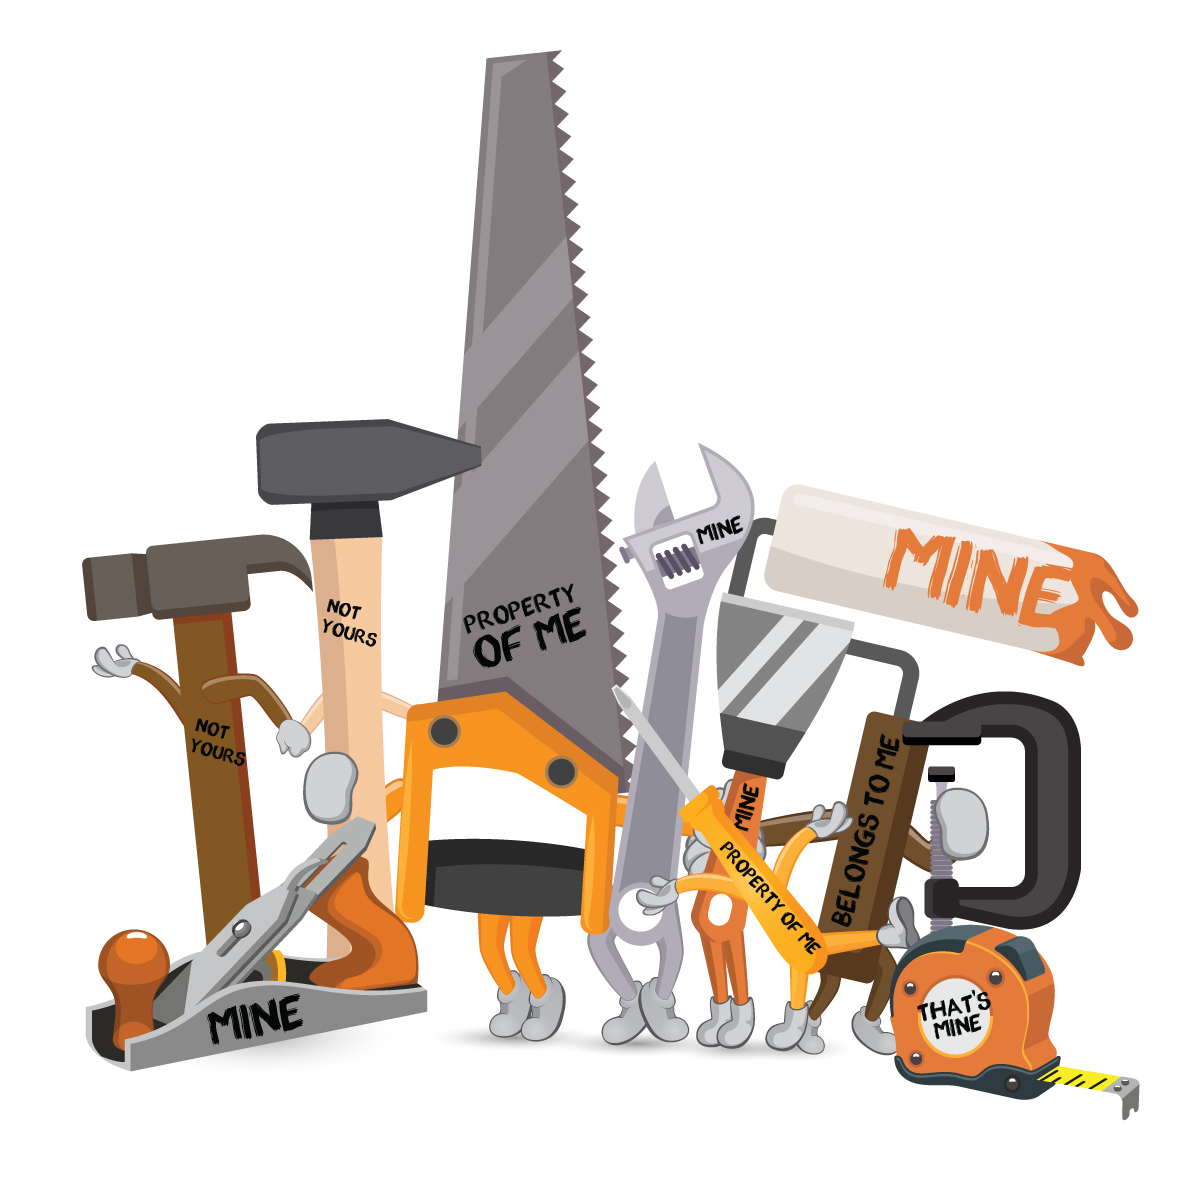 Can you afford your own tools?